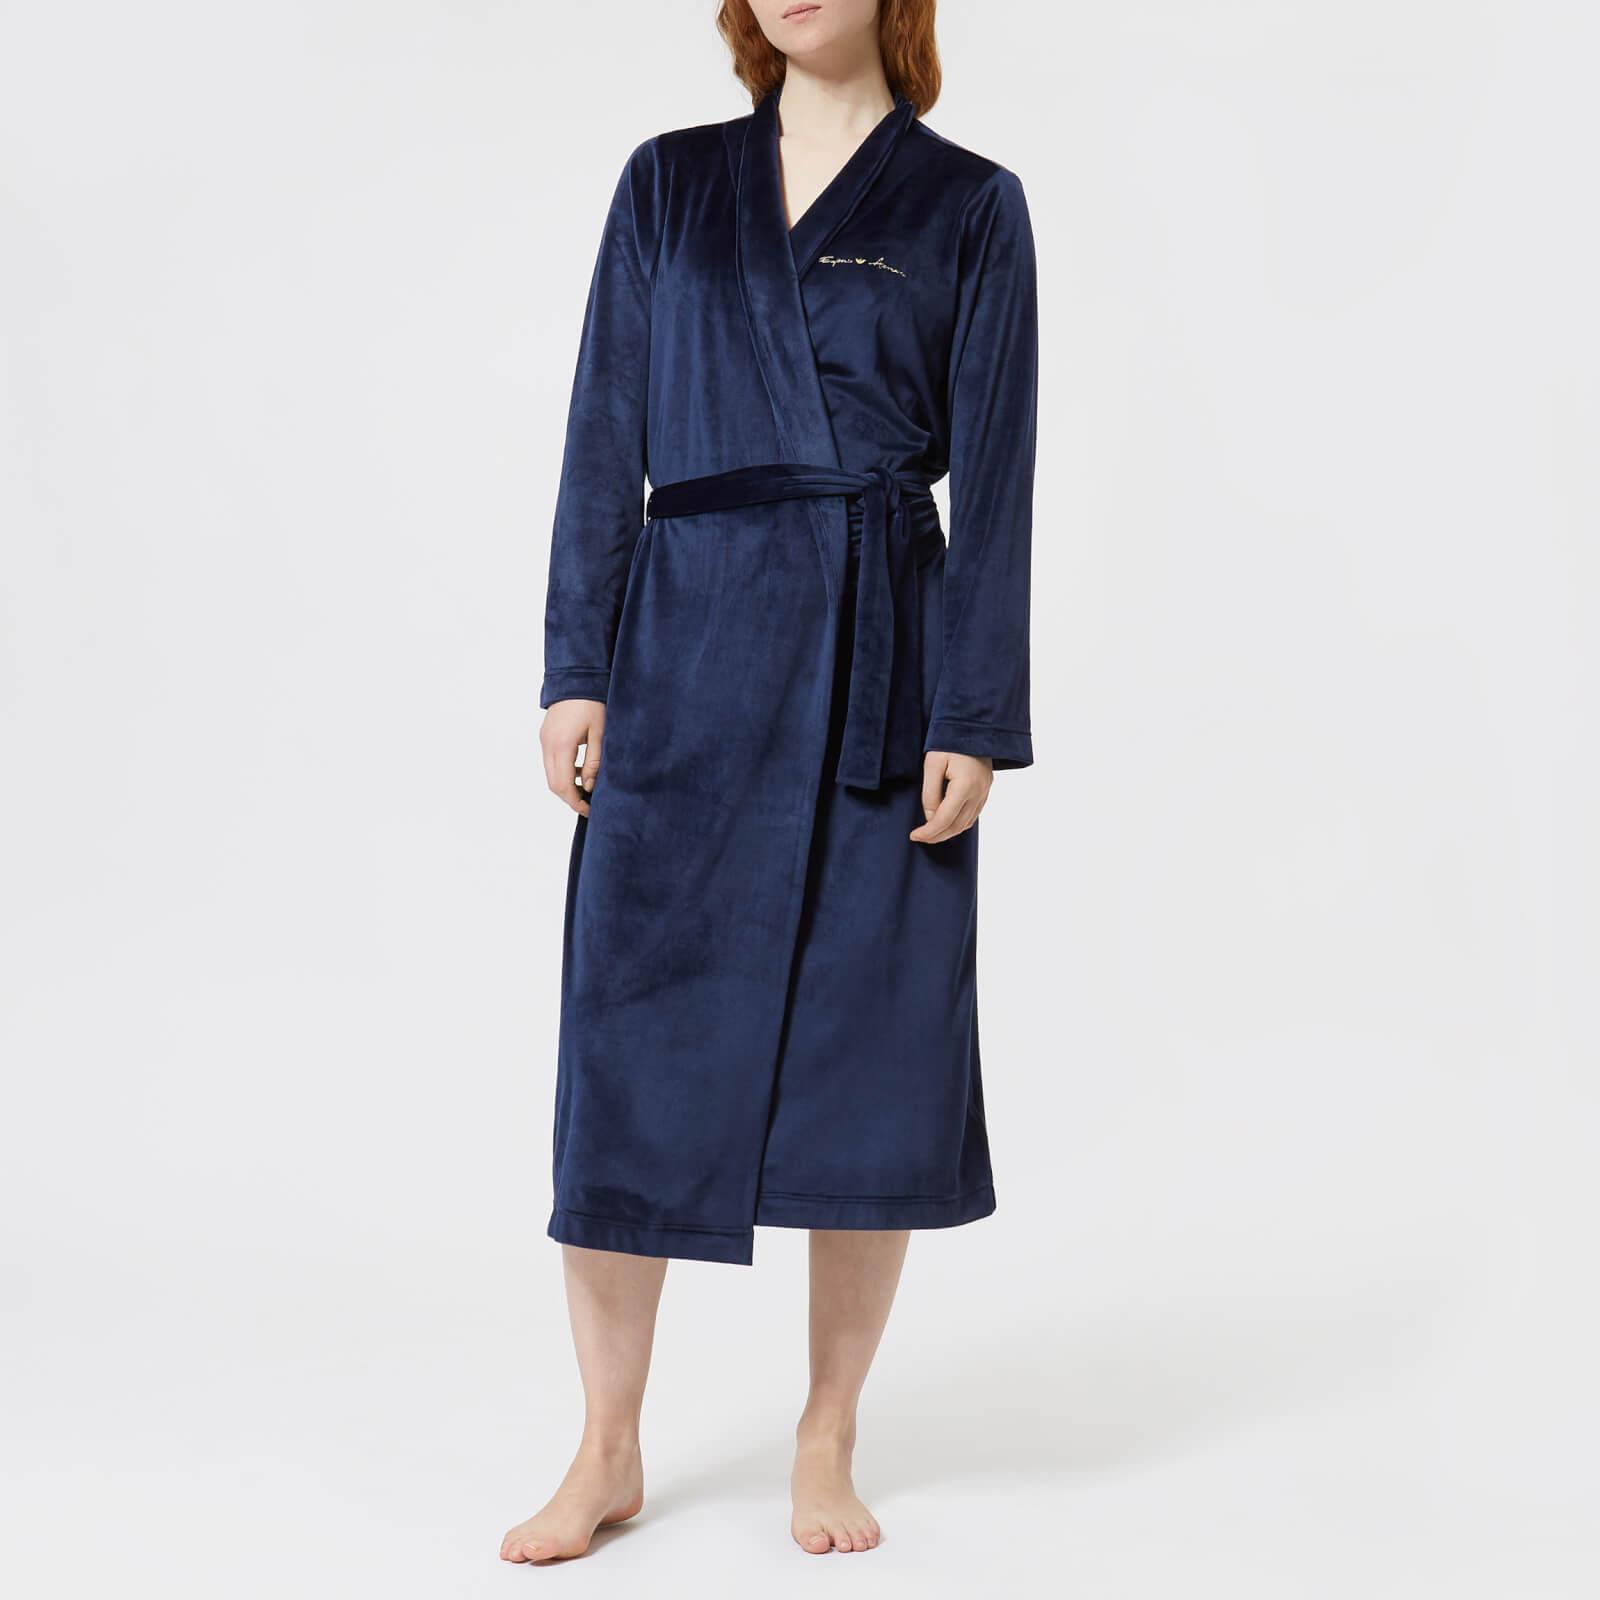 Emporio Armani Shiny Velvet Dressing Gown in Blue - Lyst 2cac61954